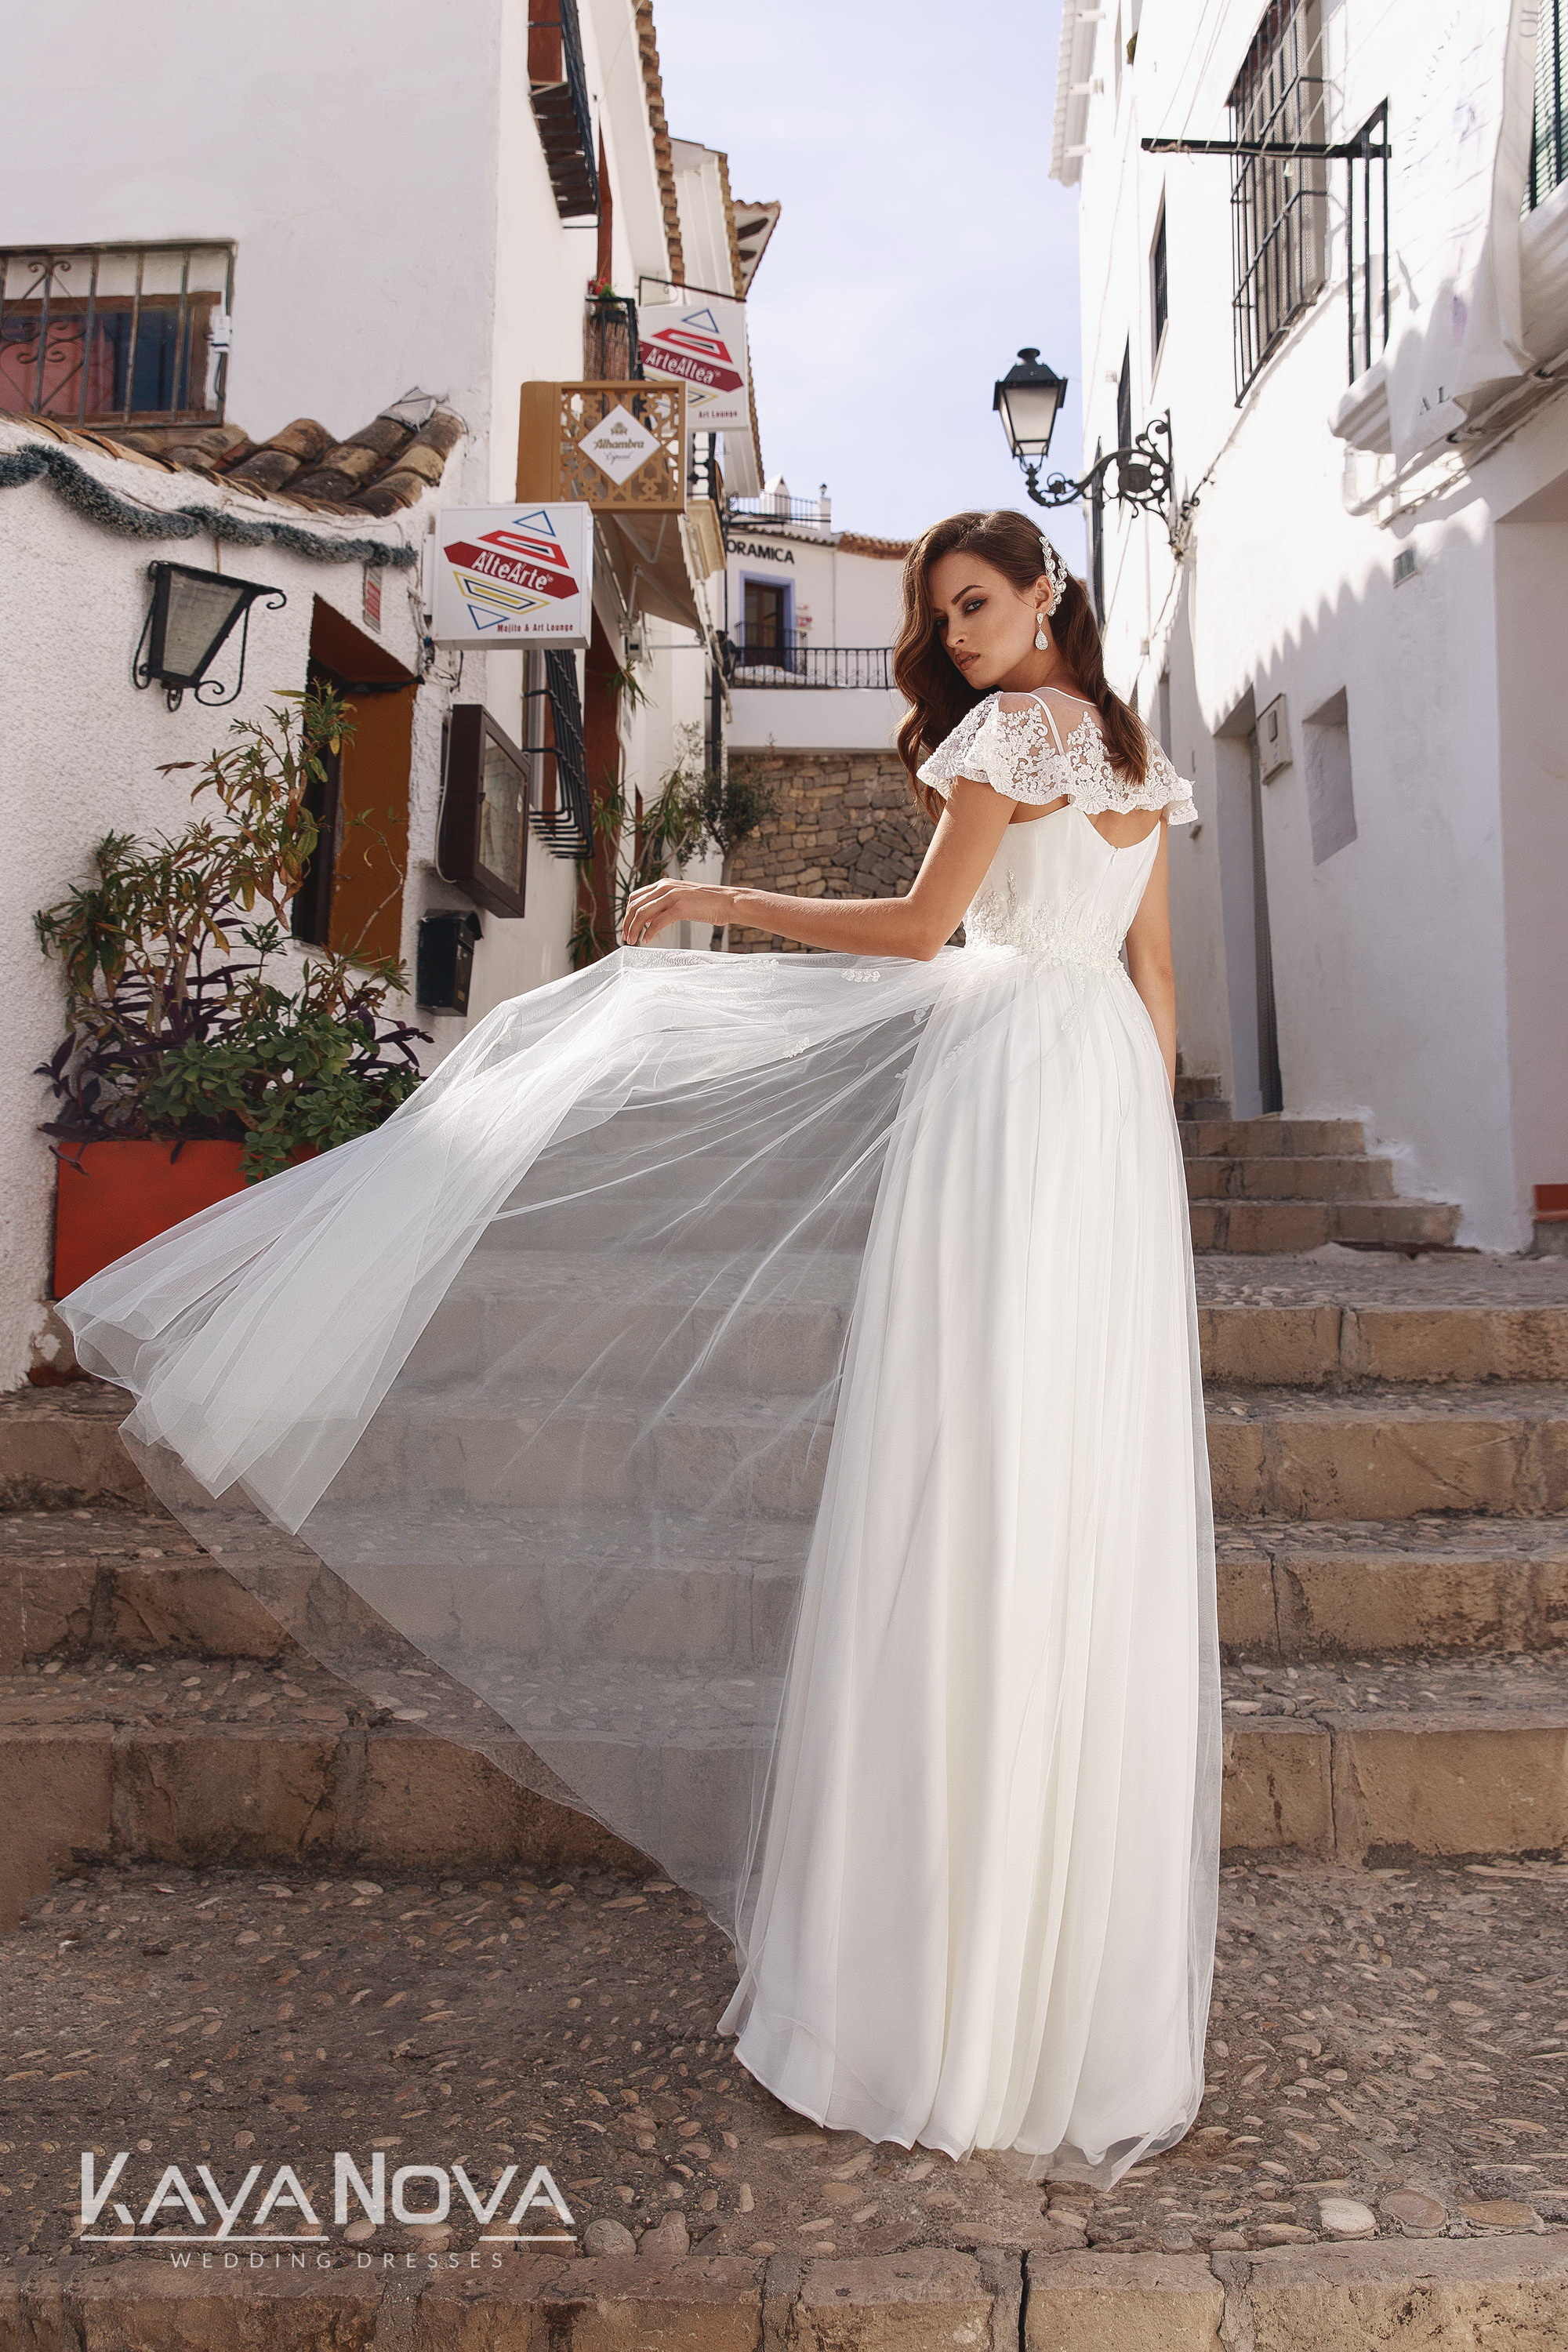 https://kayawedding.com/images/stories/virtuemart/product/Adelain dress 2.jpg